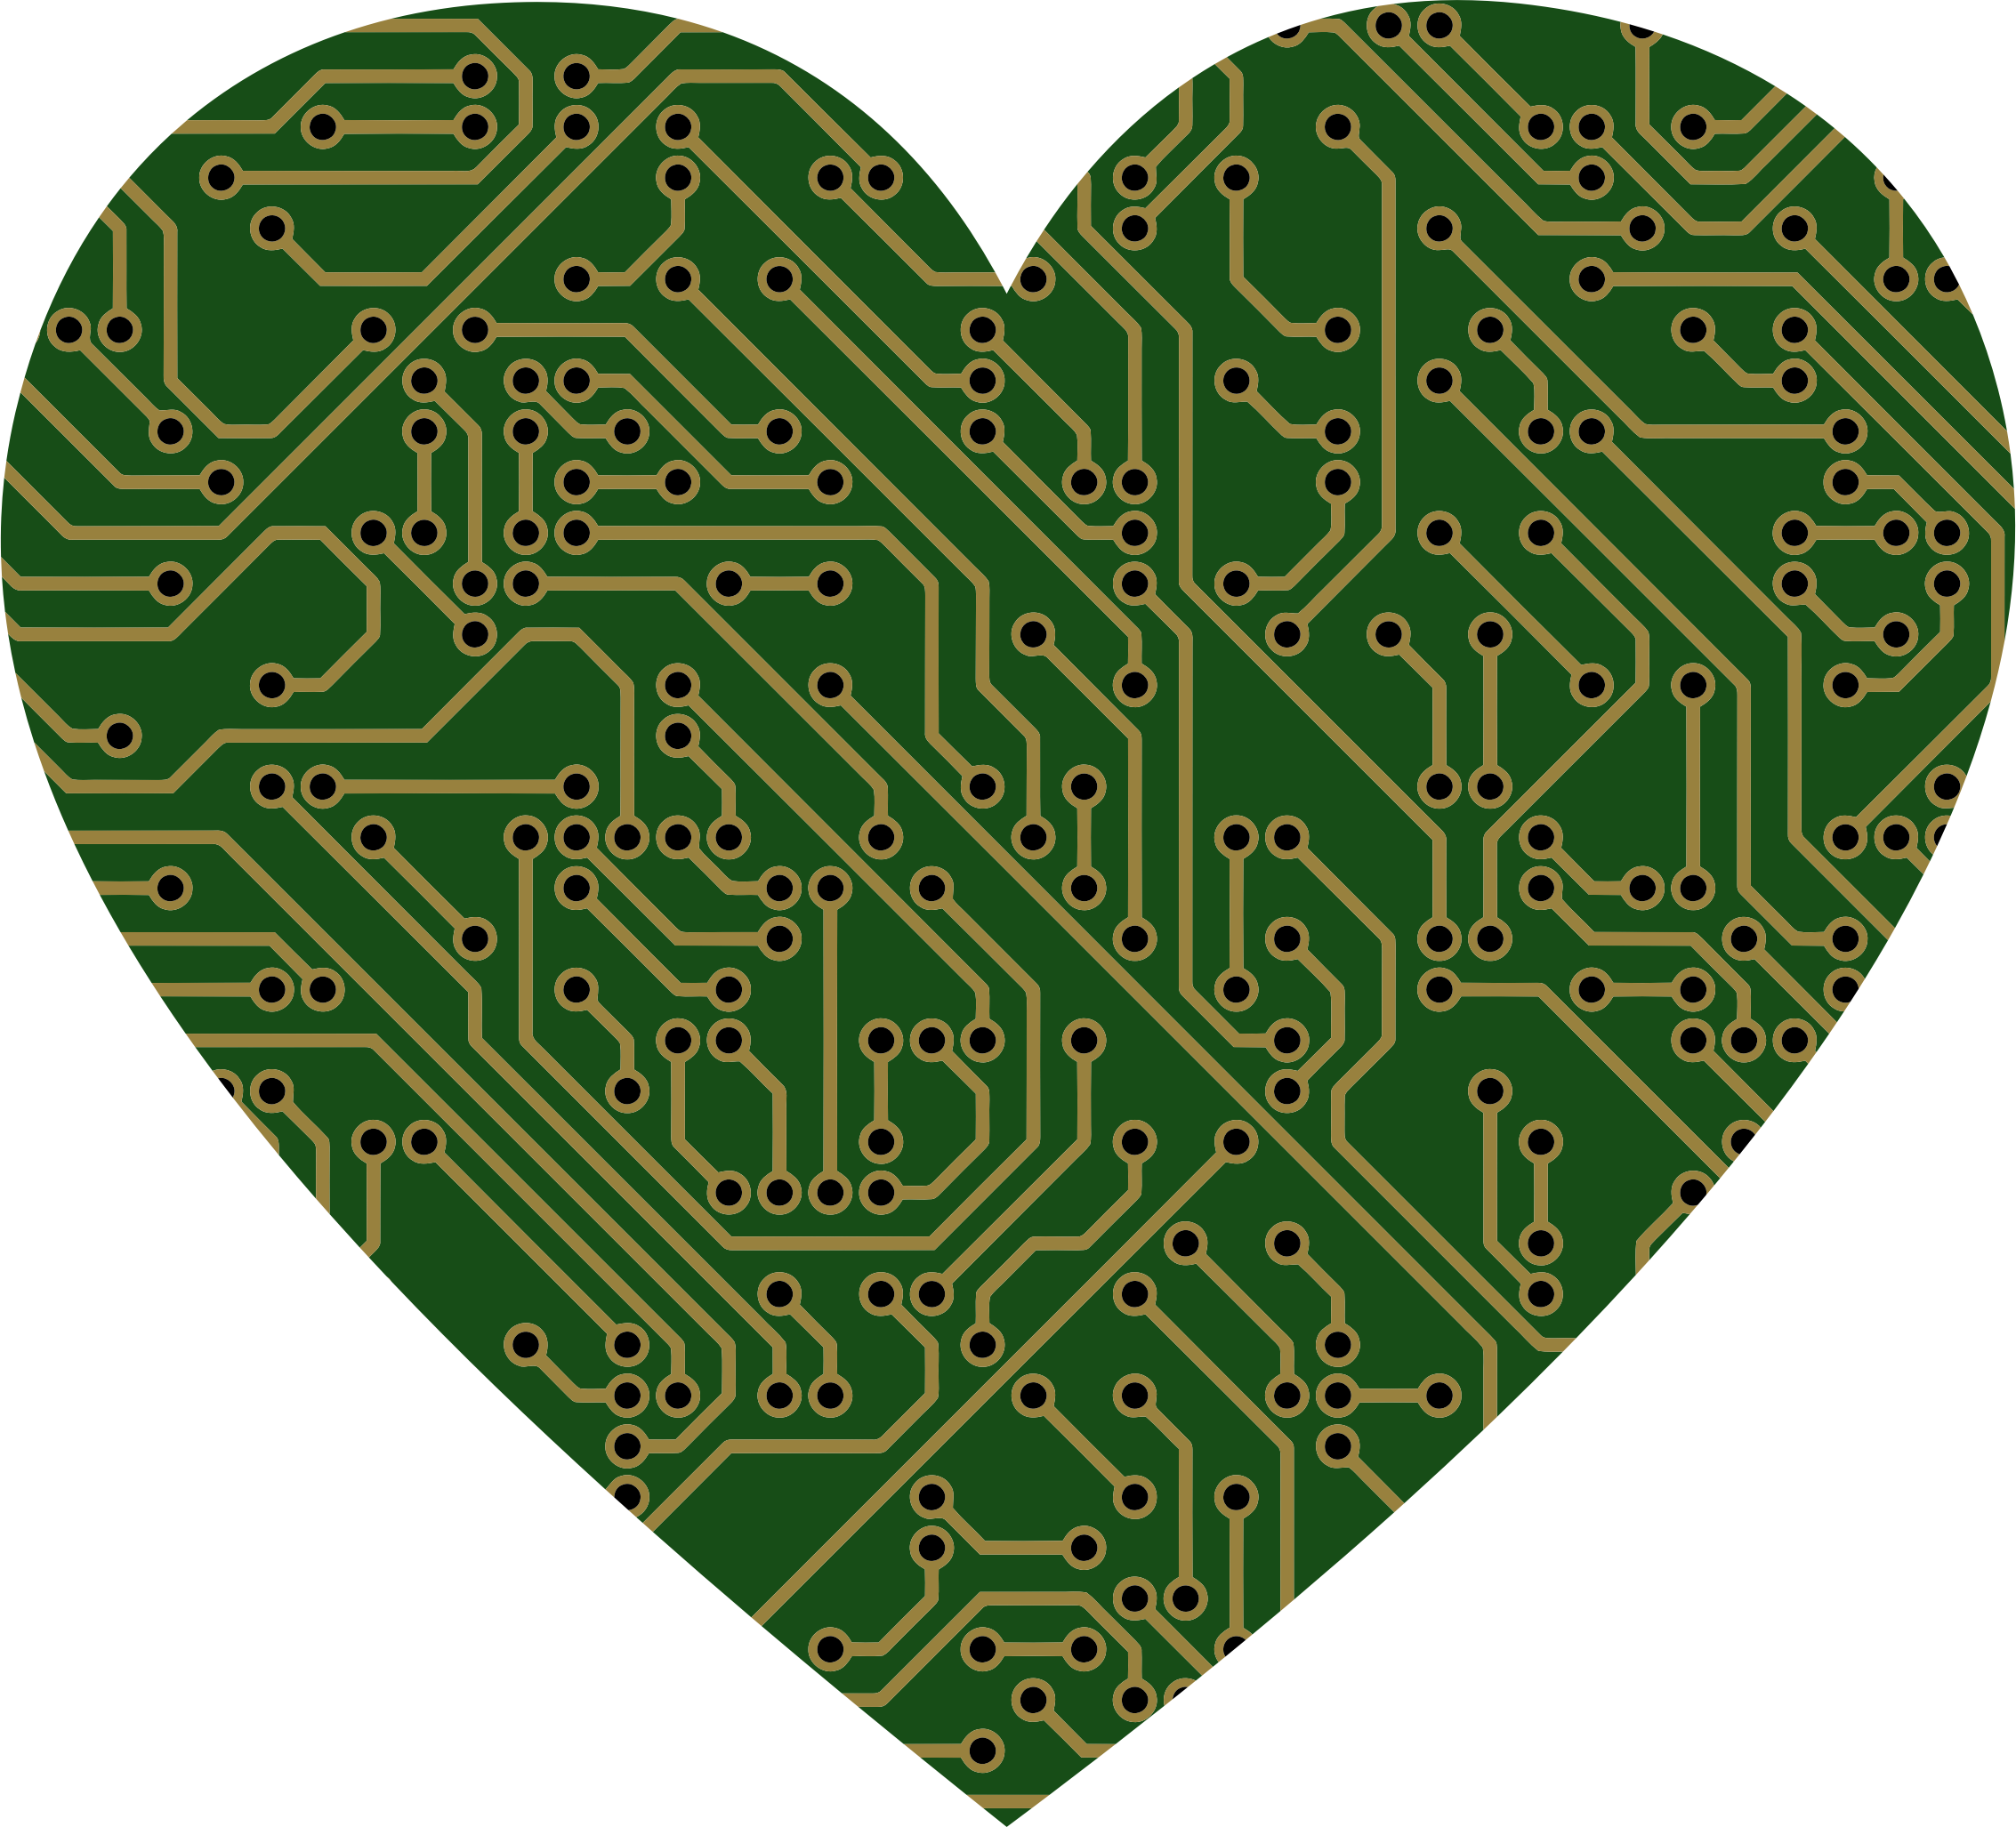 Printed Circuit Board Heart by GDJ